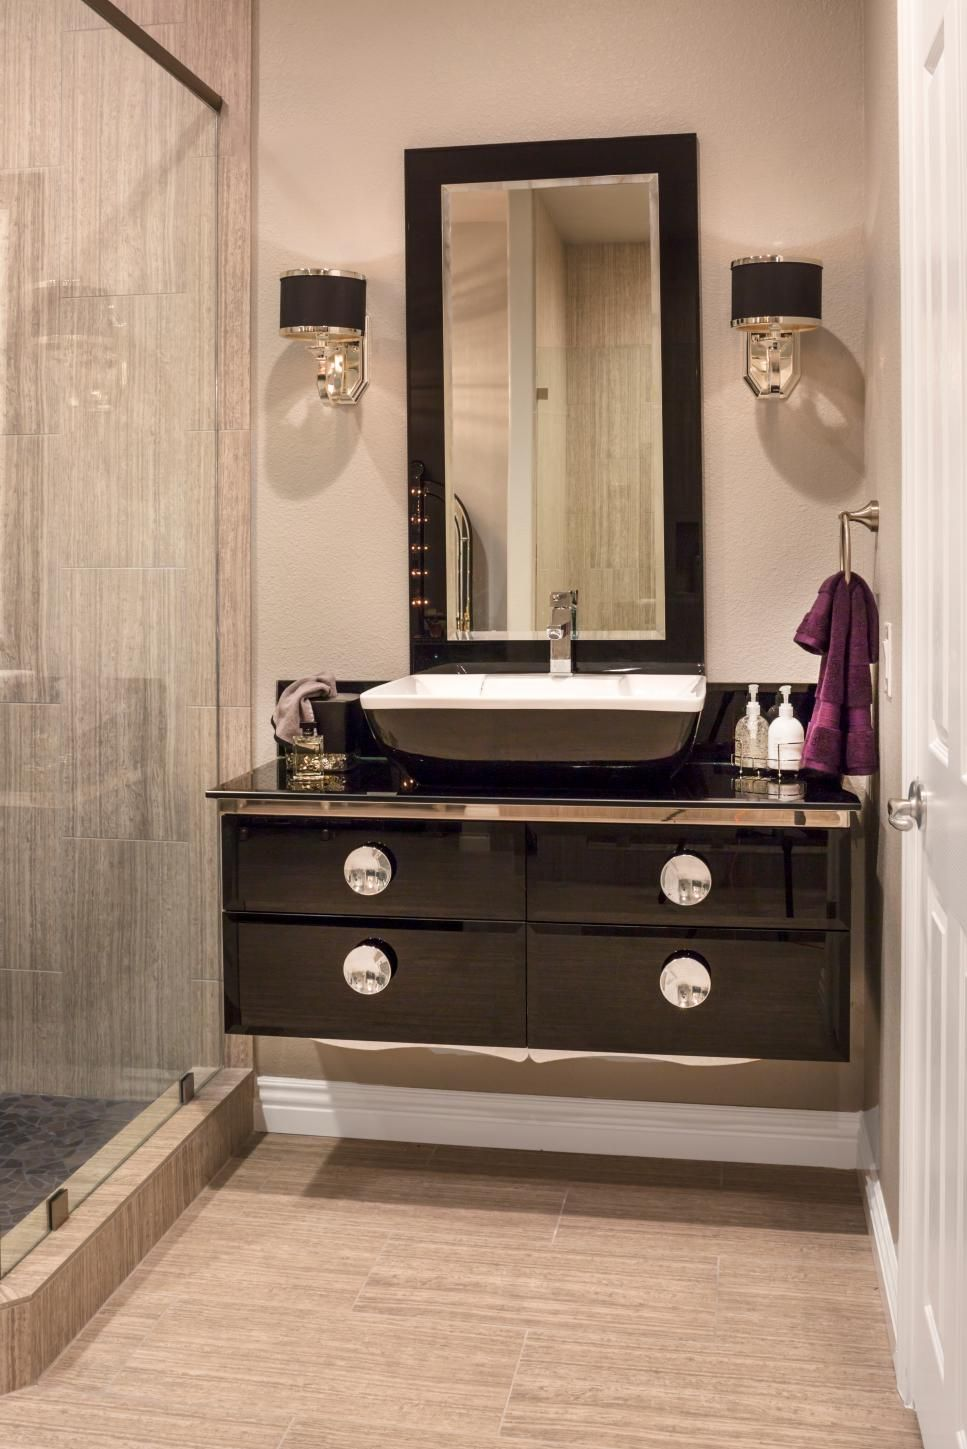 Sleek Modern Dark Bathroom With Glossy Tiled Walls: A Glossy Black Floating Nightstand Is Topped With A Sleek